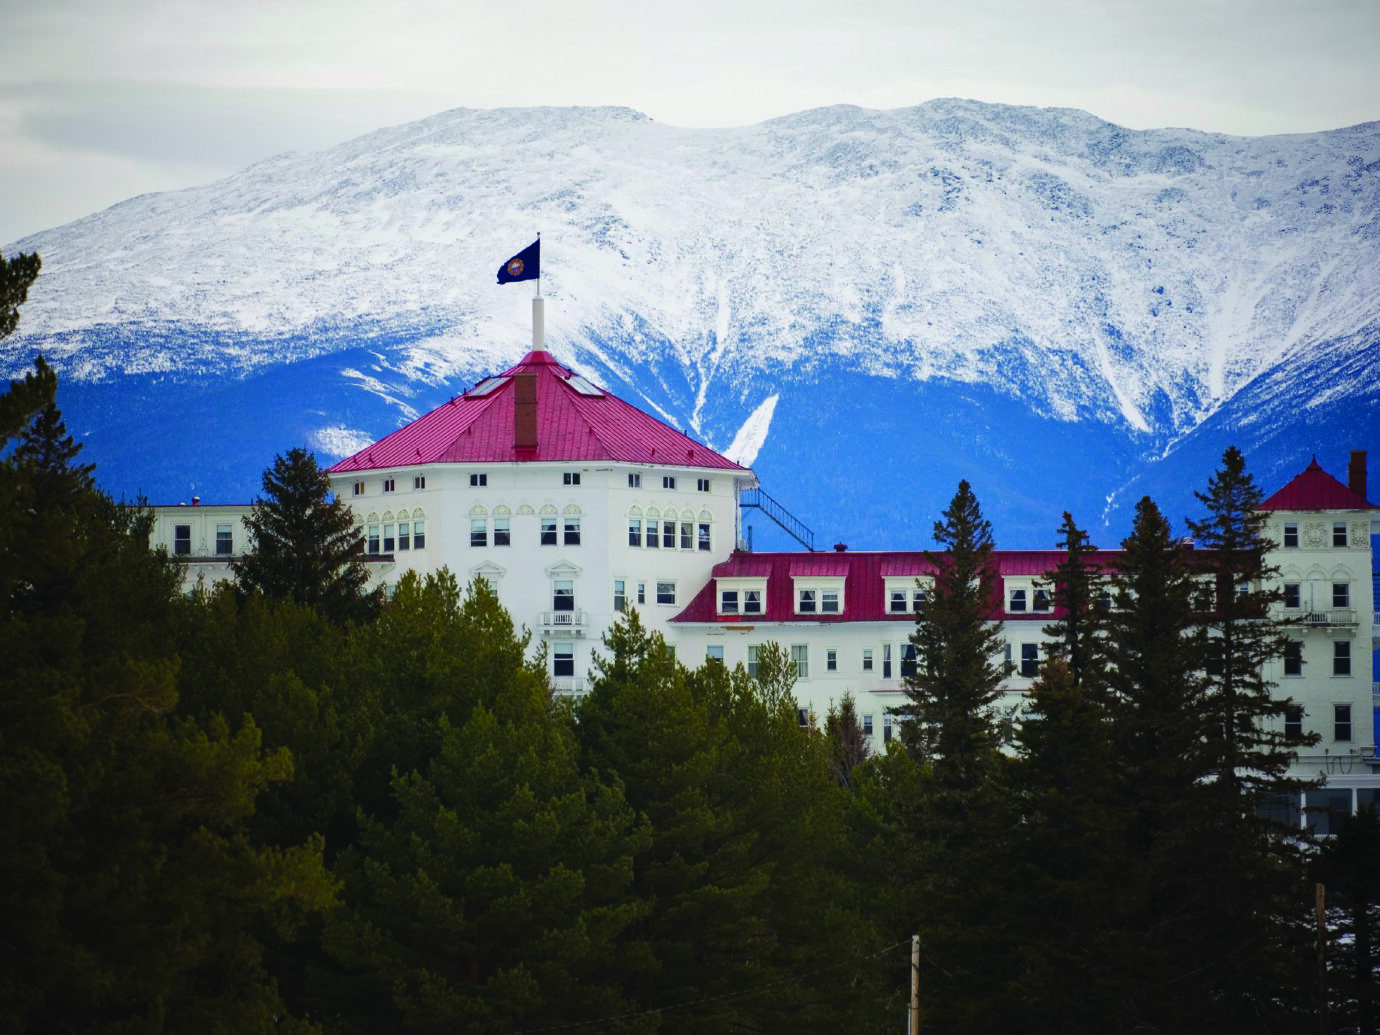 Exterior of Omni Mount Washington Resort, Bretton Woods, NH